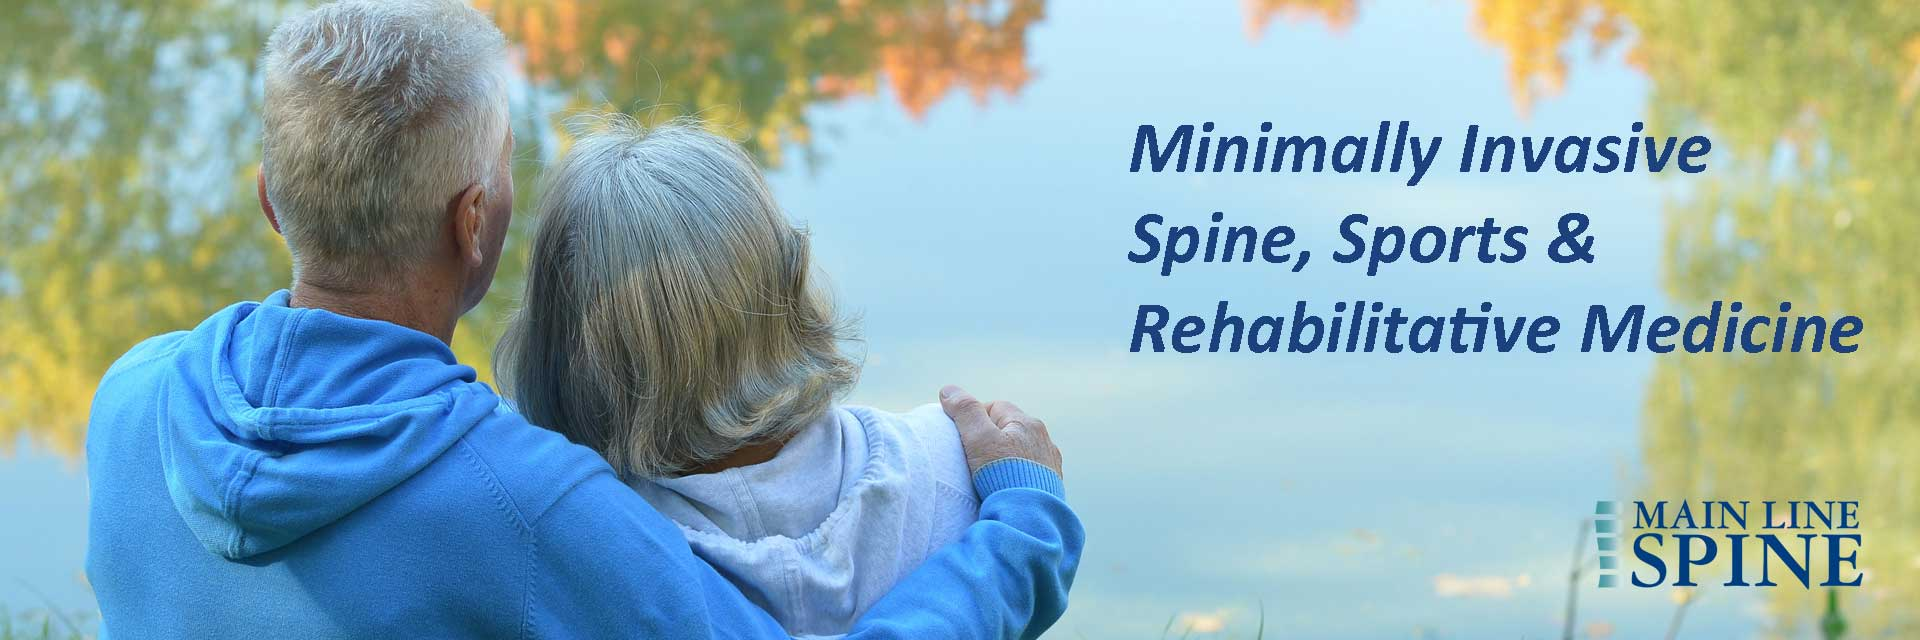 Main Line Spine - Minimally Invasive Spine, Sports and Rehabilitative Medicine - Couple Relaxing